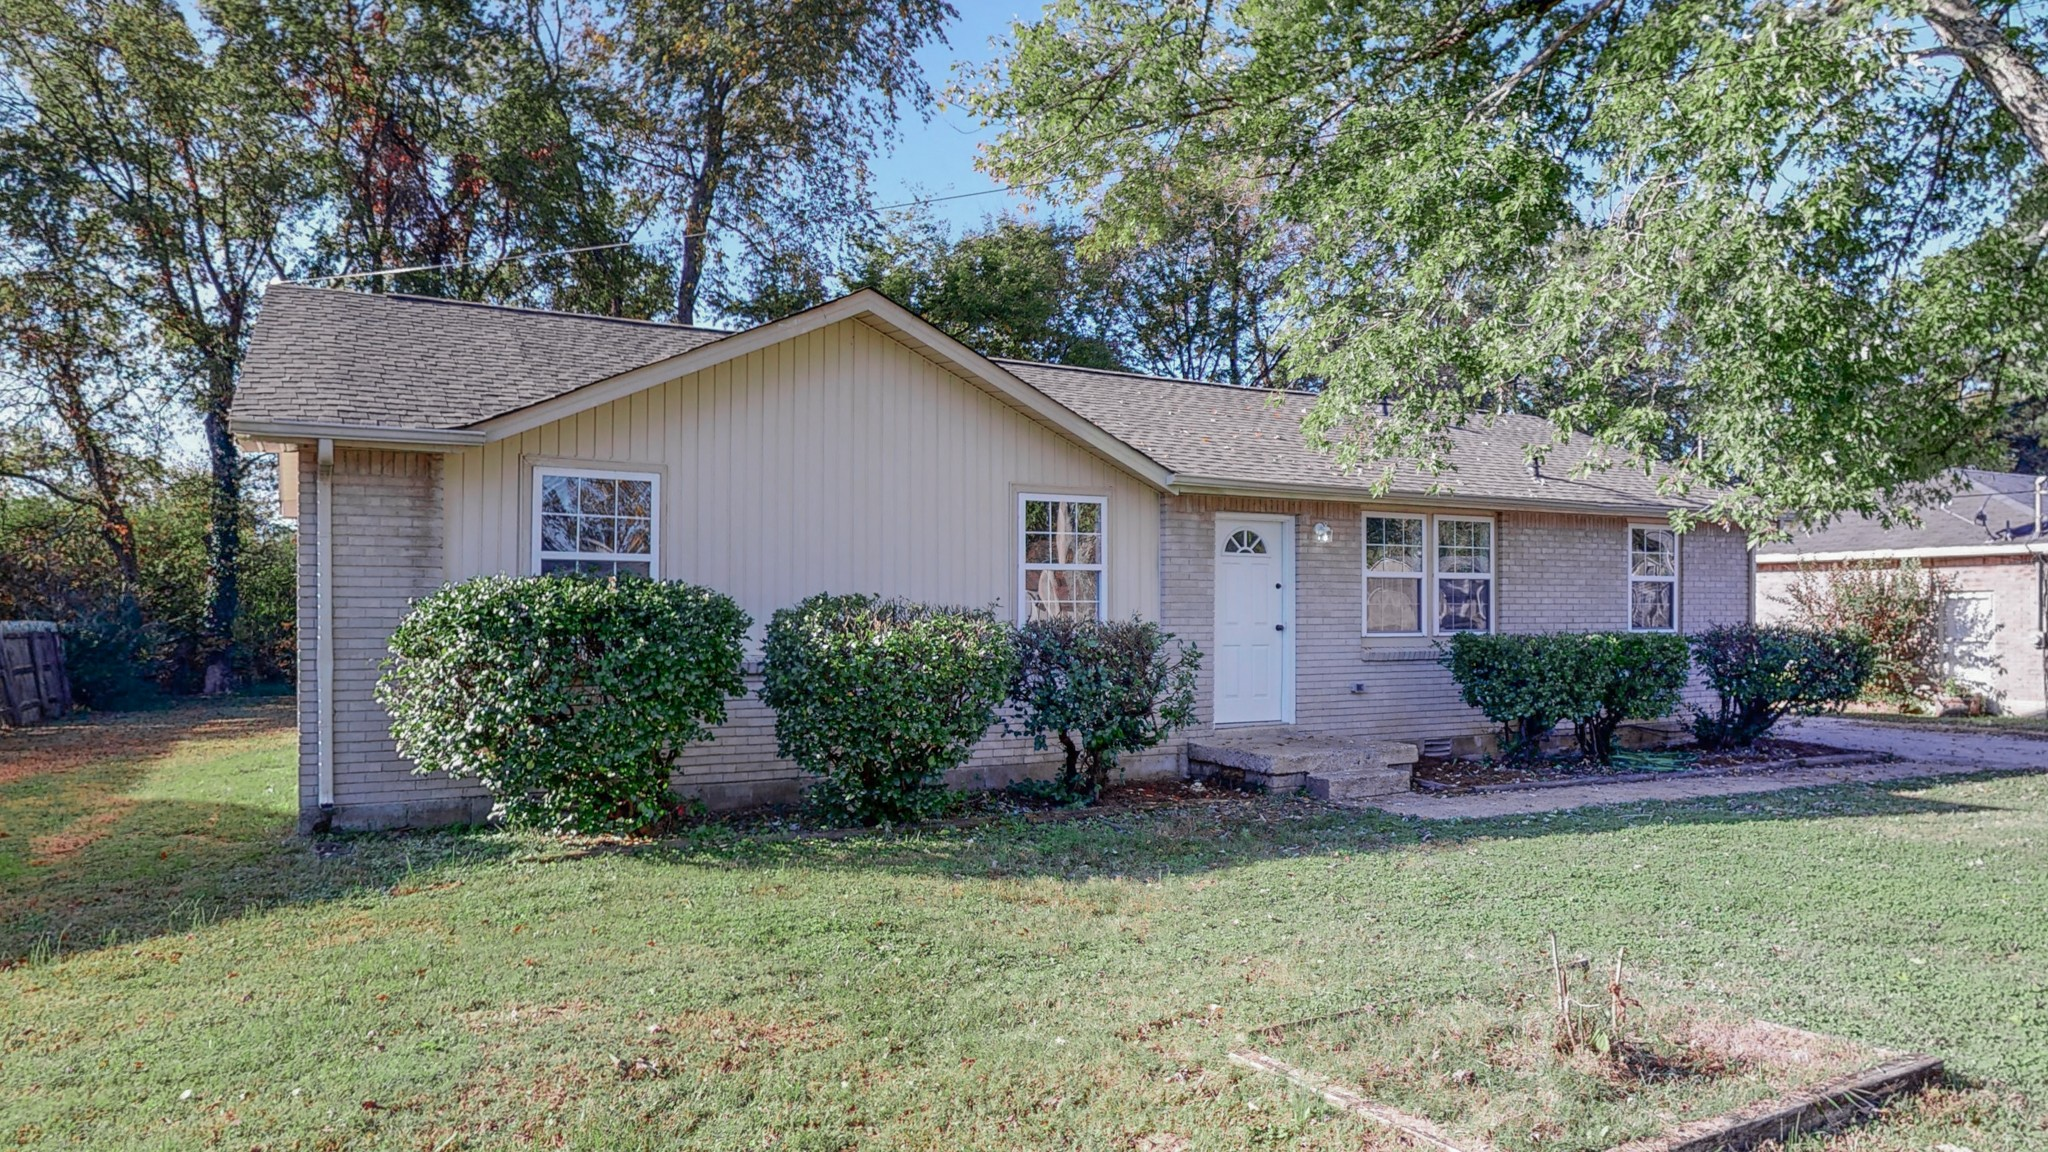 Completely renovated 3bd 1ba with a 1 car garage. New flooring, new roof, granite counters in the kitchen. Great first time buyer home or investment.